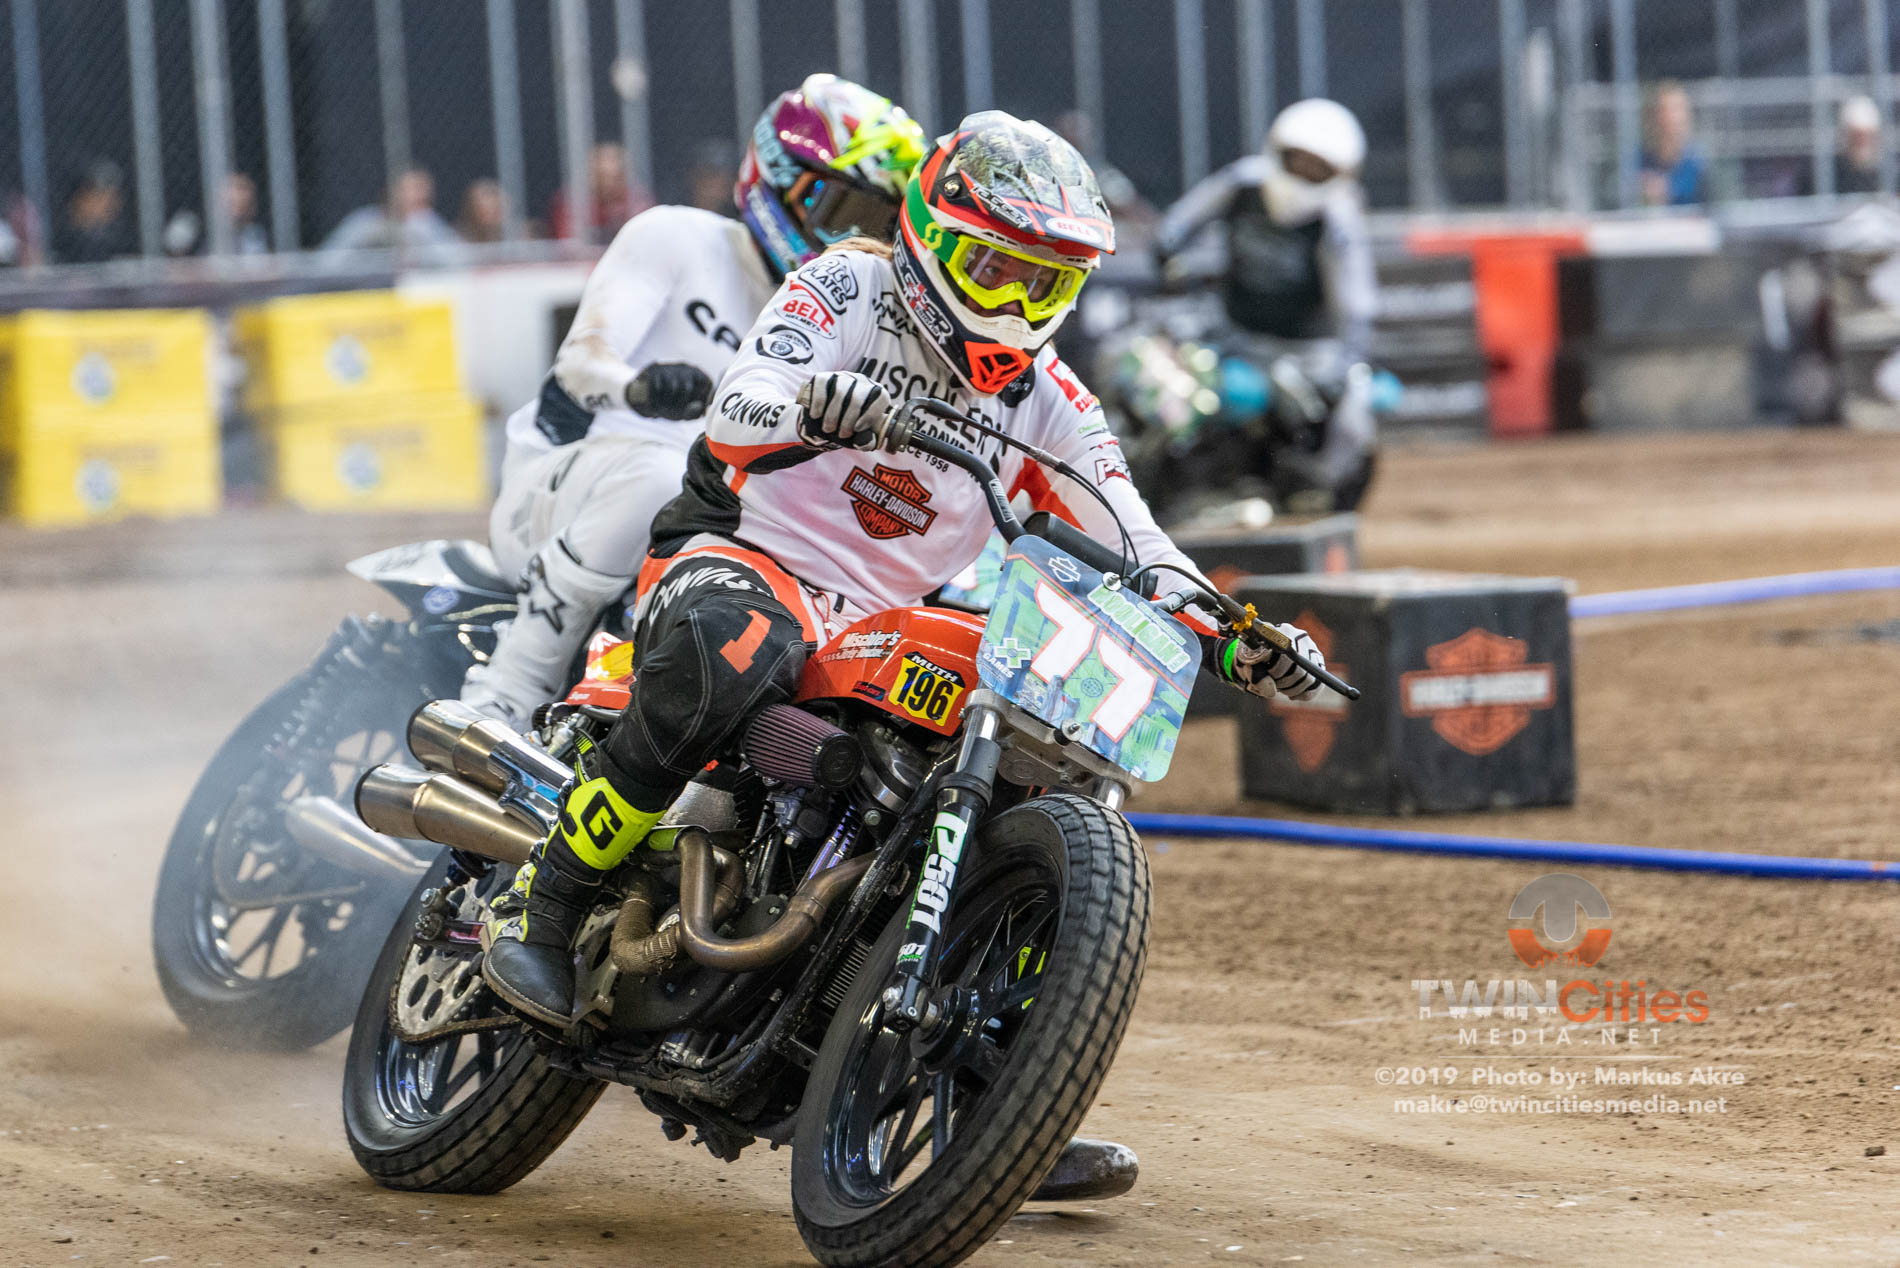 2019-X-Games-Day-4-Harley-Davidson-Hooligan-Racing-8